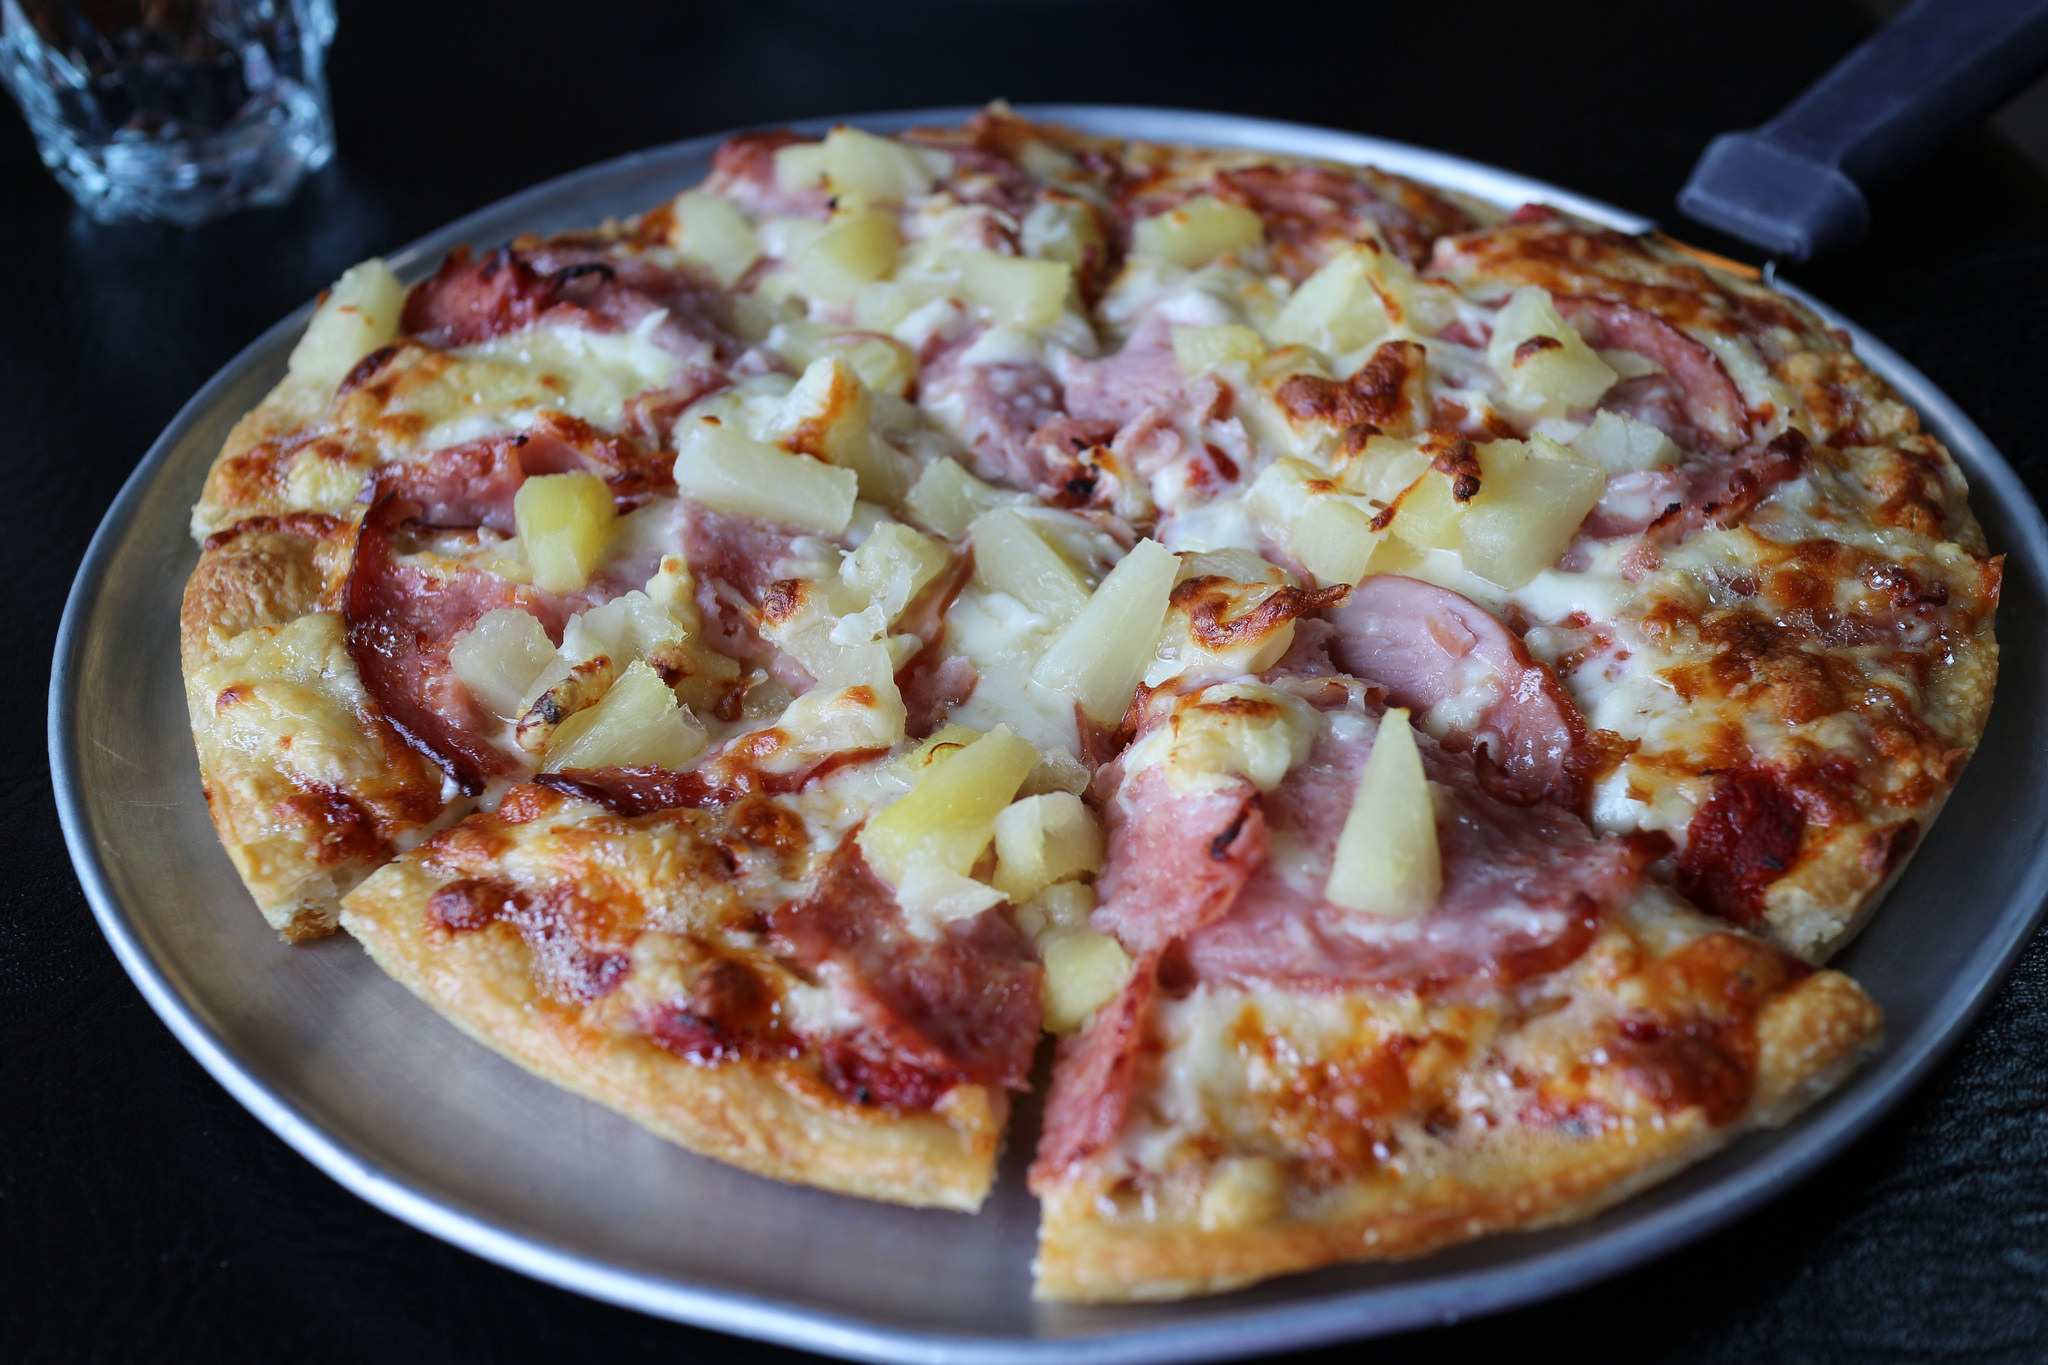 """Athena Pizza - Hawaiian Pizza"" by Elsie Hui is licensed under CC 2.0."